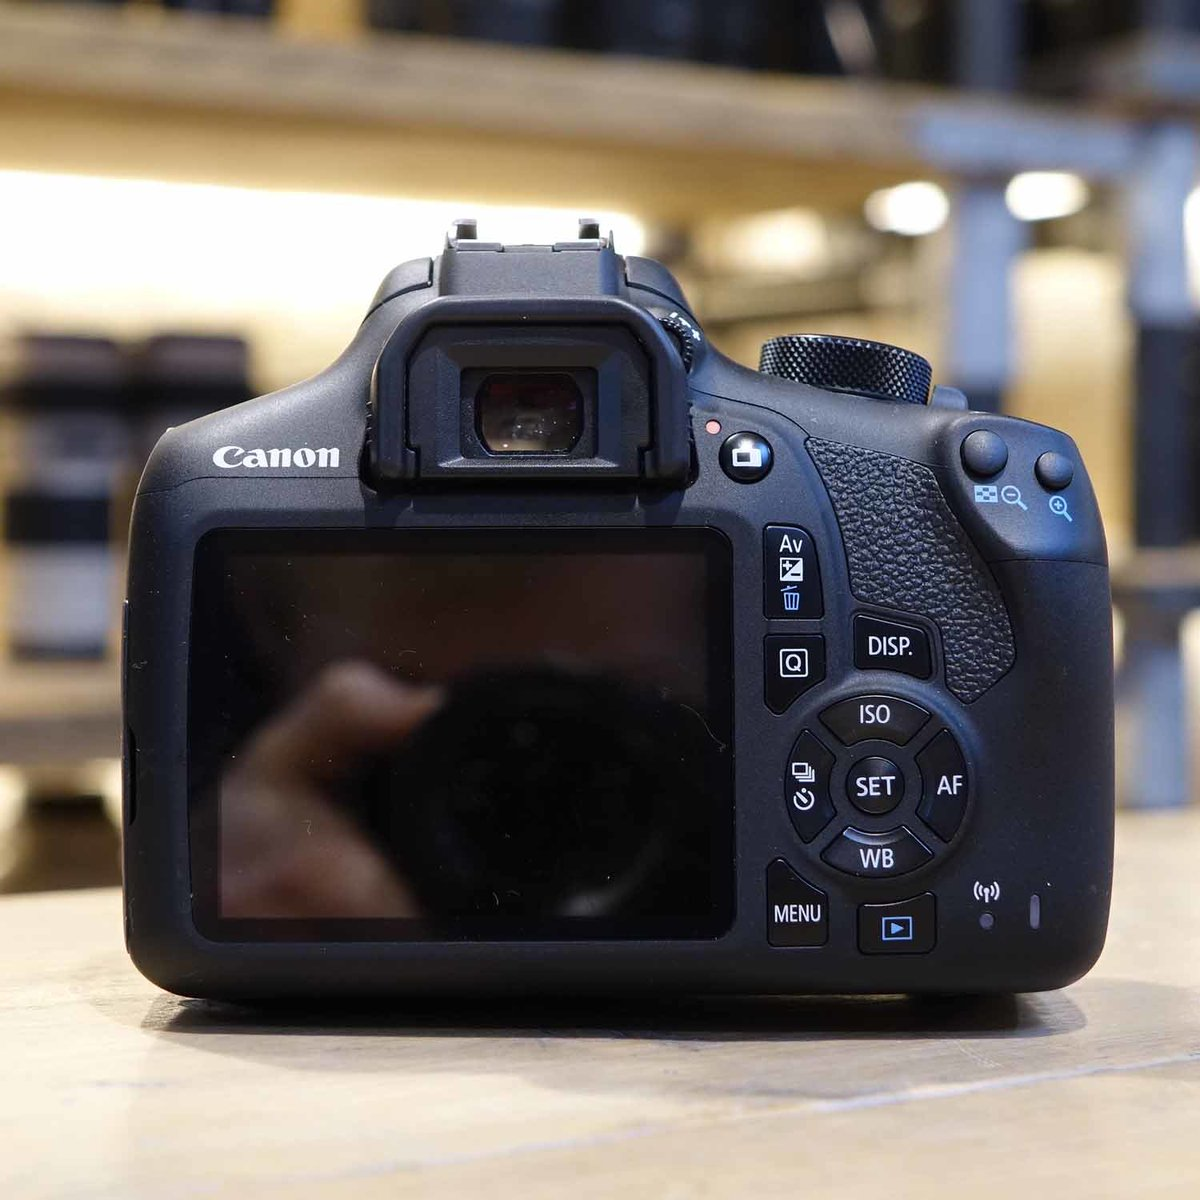 Harrisoncameras Used On Twitter Just In Canon Eos 1300d Dslr Kit 18 55 Iii Camera With 55mm Lens 270 Https Tco Iegeugcoge Photography Accessories